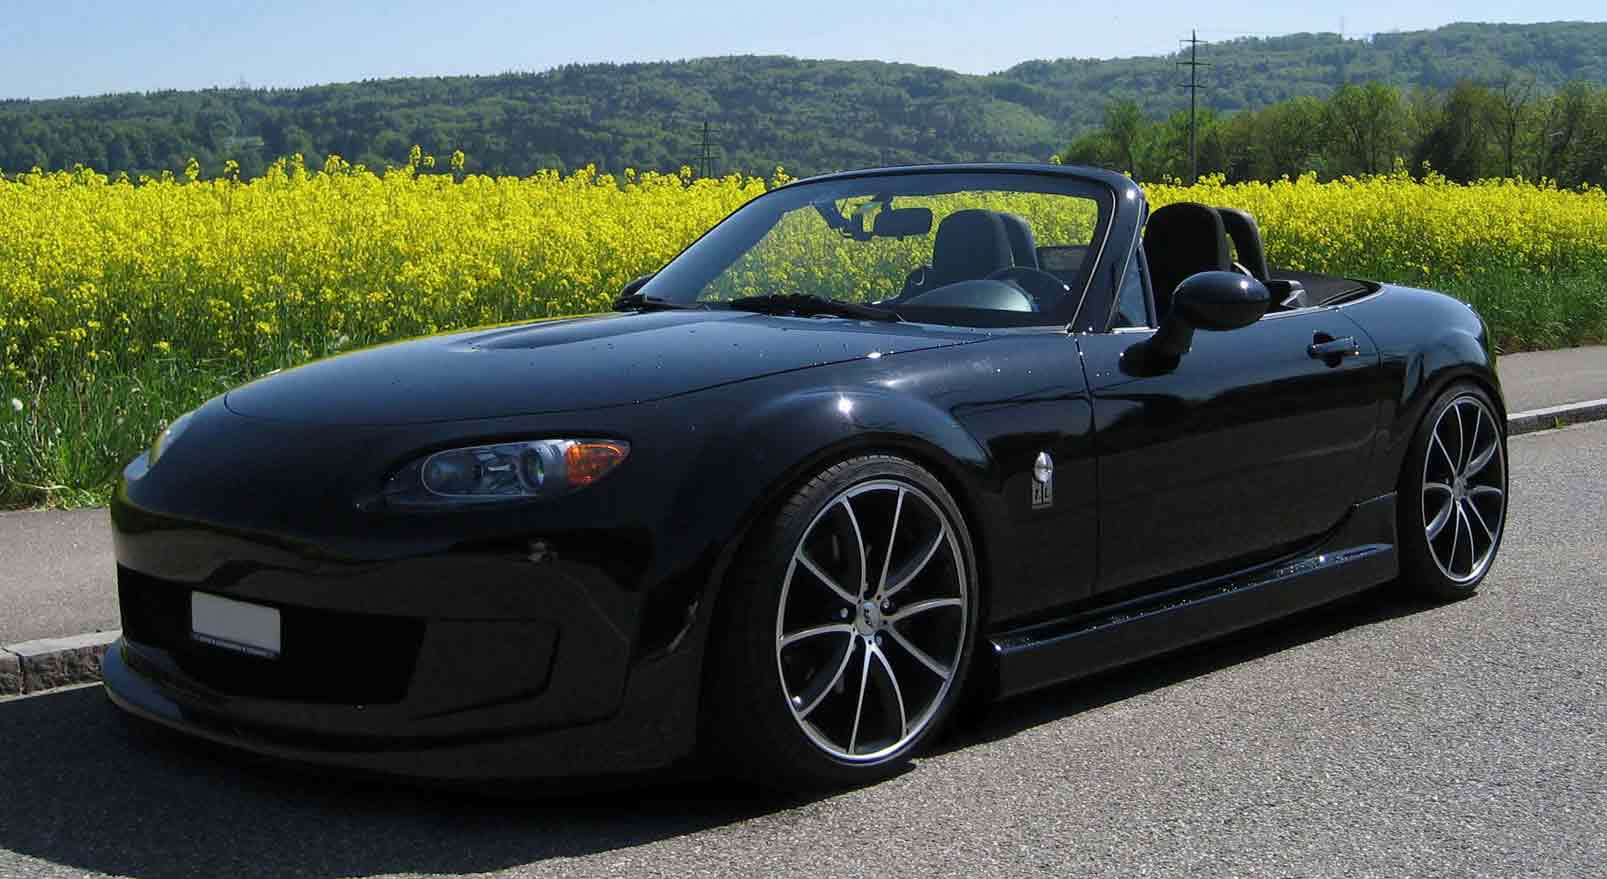 mazda mx 5 2008 review amazing pictures and images look at the car. Black Bedroom Furniture Sets. Home Design Ideas